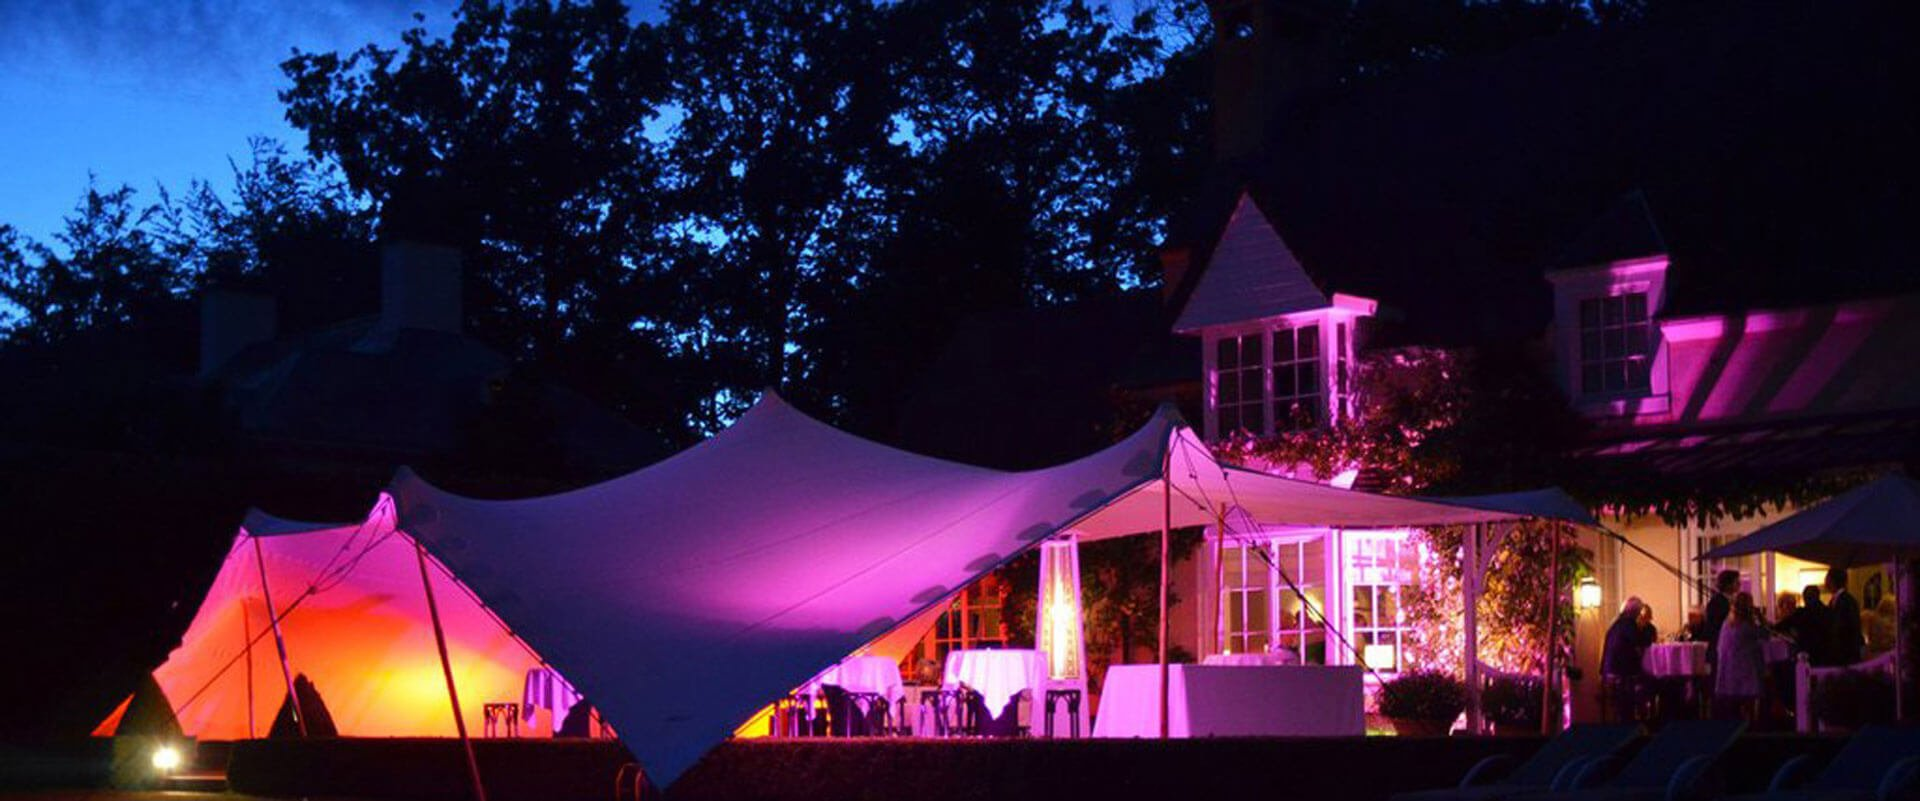 Stretch Tent Marquee covering Wedding Venue